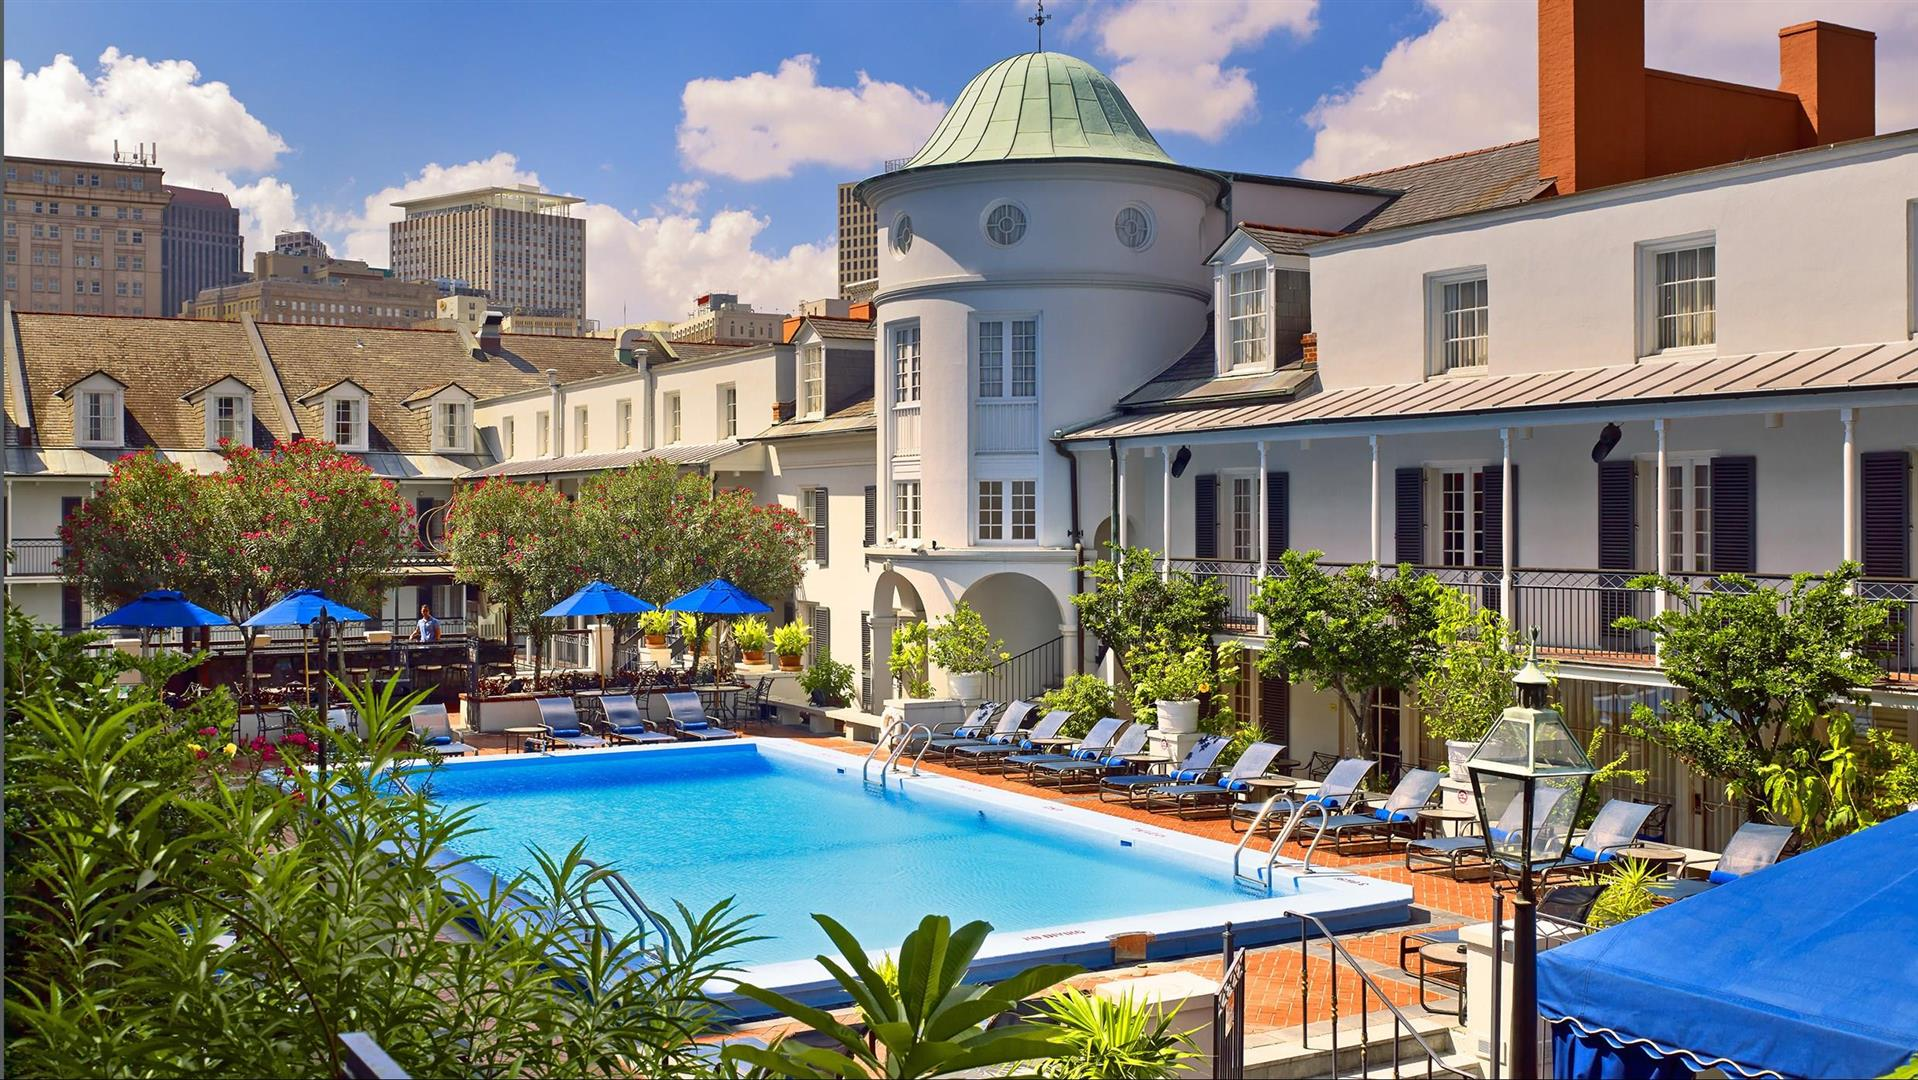 Villa Club Orleans Meetings And Events At Royal Sonesta New Orleans New Orleans La Us